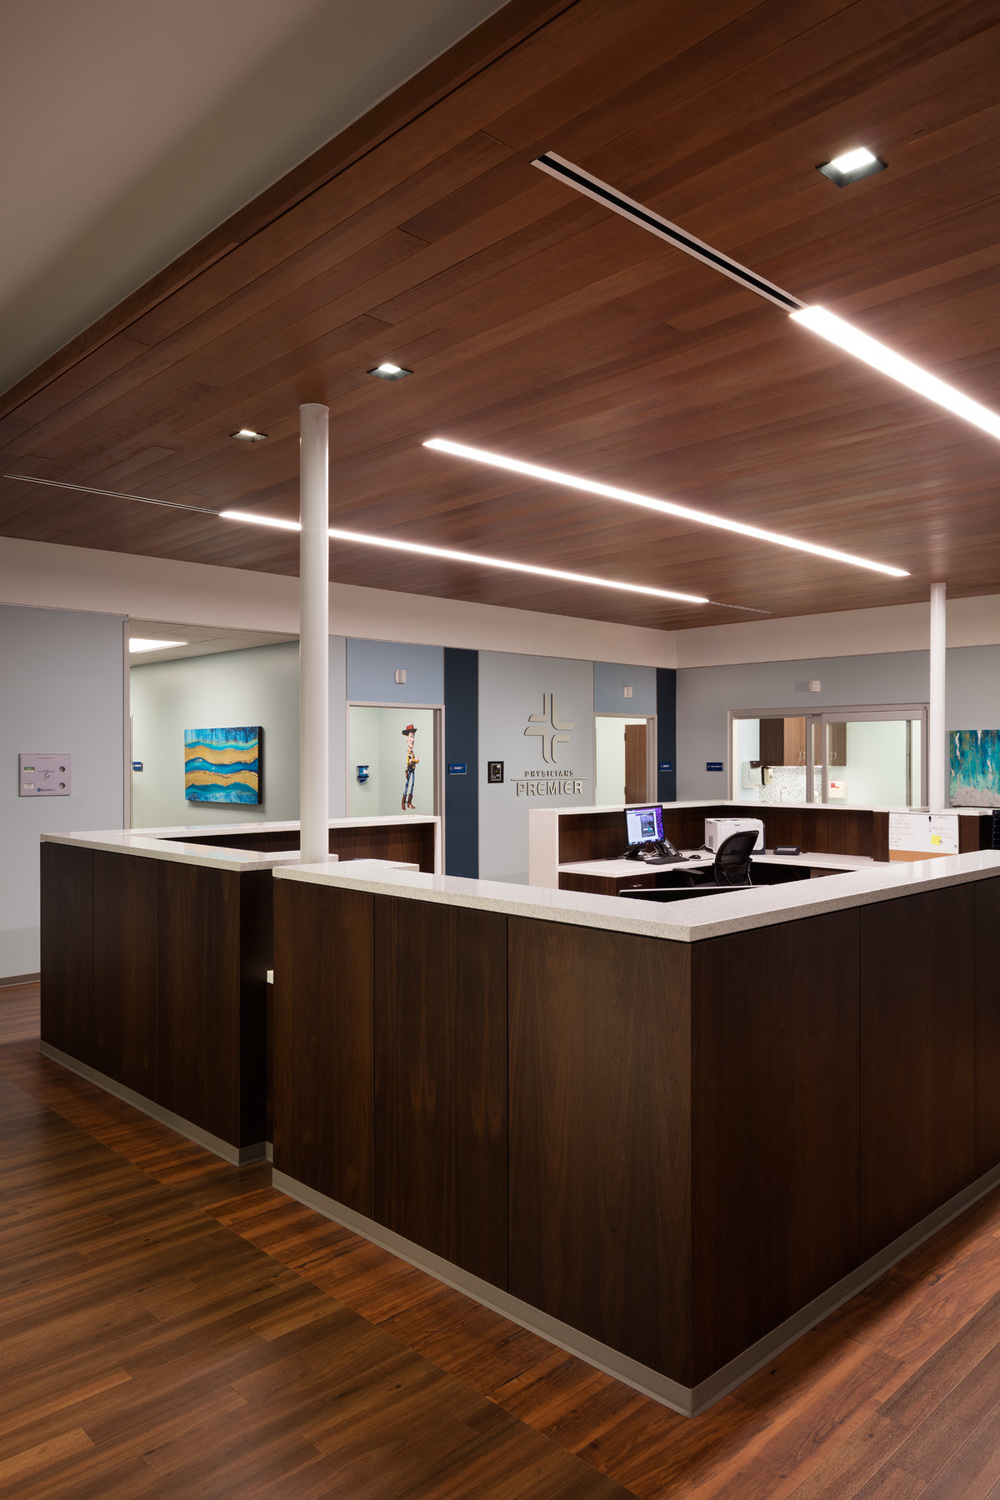 1343 / PHYSICIANS PREMIER, PORTLAND, TX / m ARCHITECTS